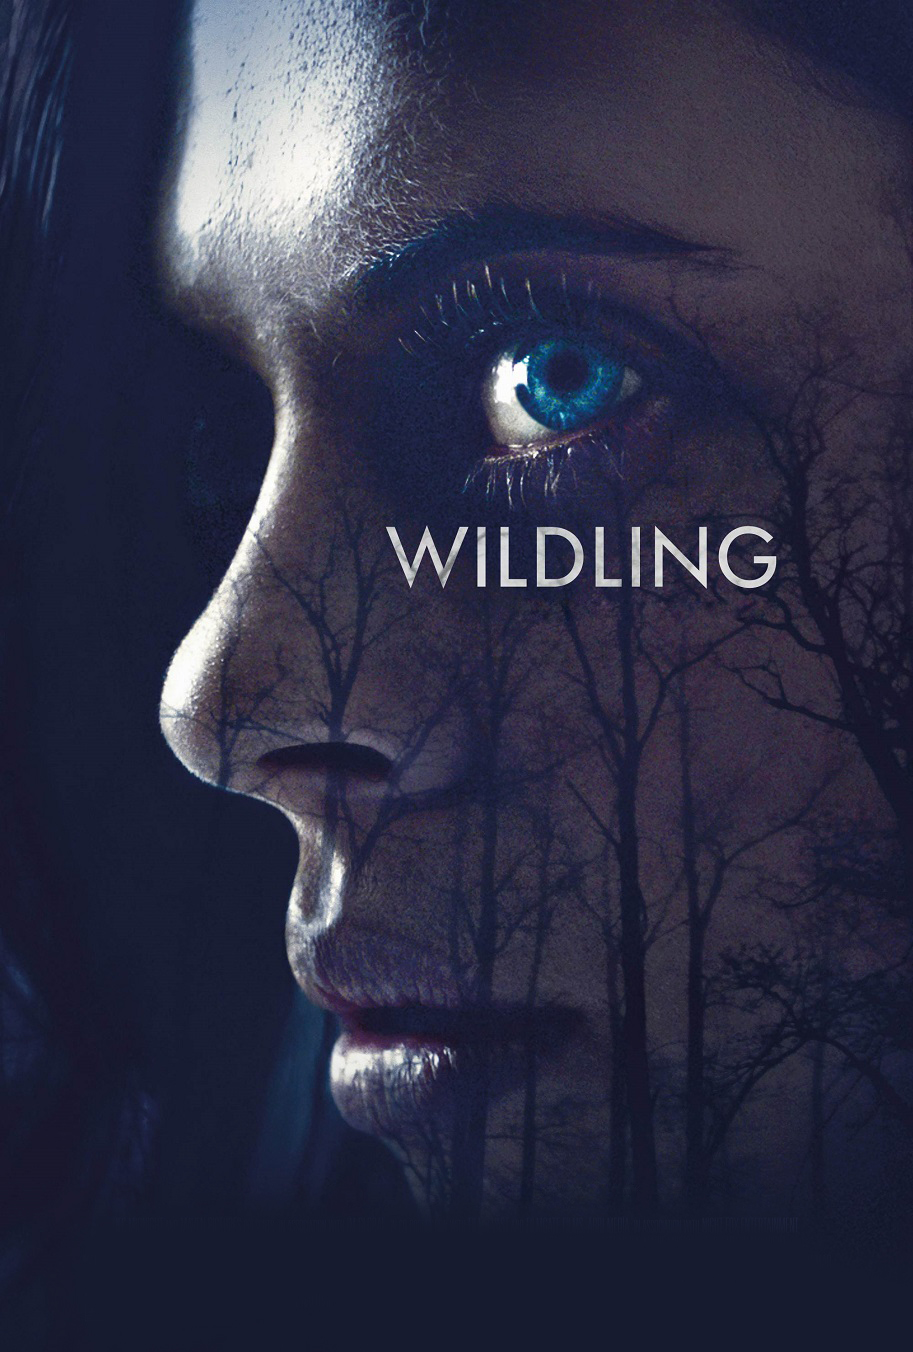 Wildling [2018] [DVDR] [NTSC] [CUSTOM HD] [Subtitulado]